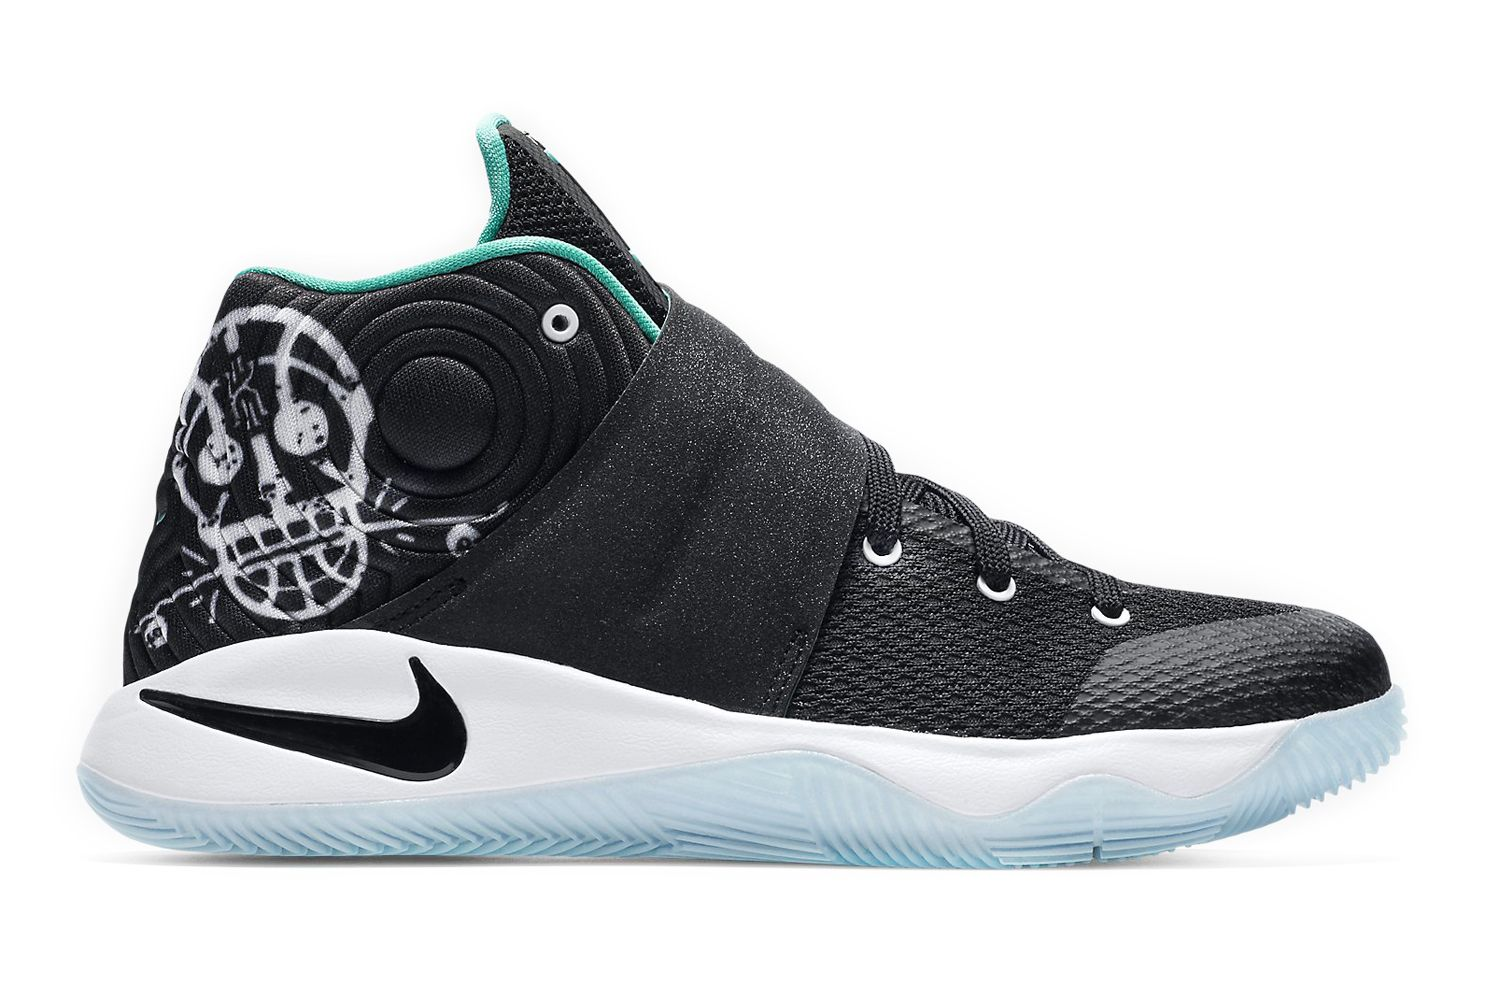 d0c735faa8fe Nike Basketball s Kyrie 2 Goes Skateboarding  get ready to hit the hardwood  in style.